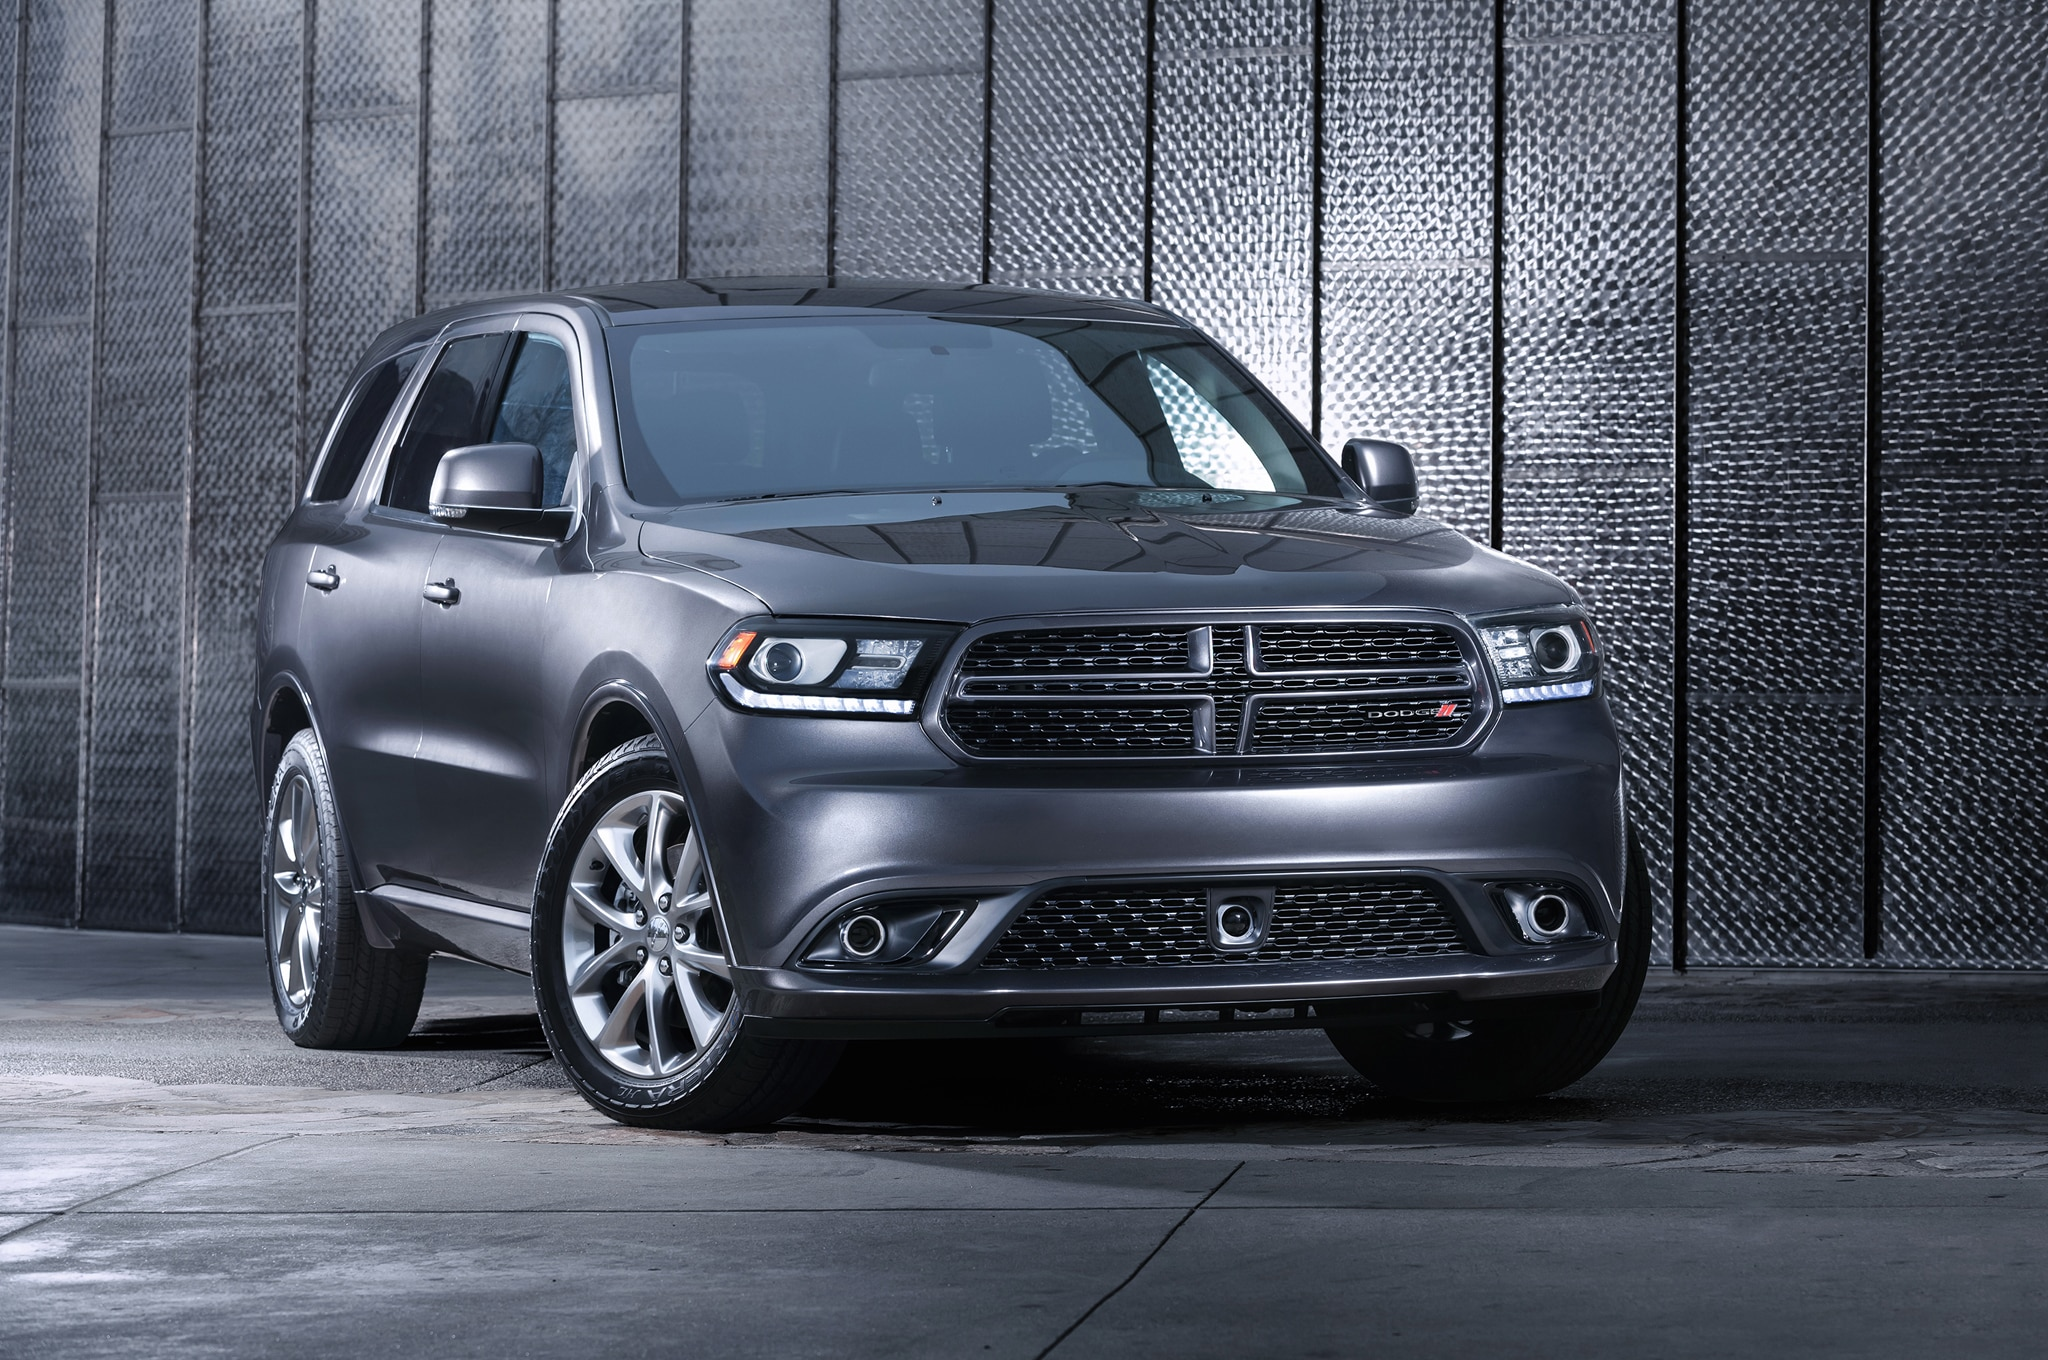 2015 dodge durango r t adds optional radar red nappa leather seats. Black Bedroom Furniture Sets. Home Design Ideas